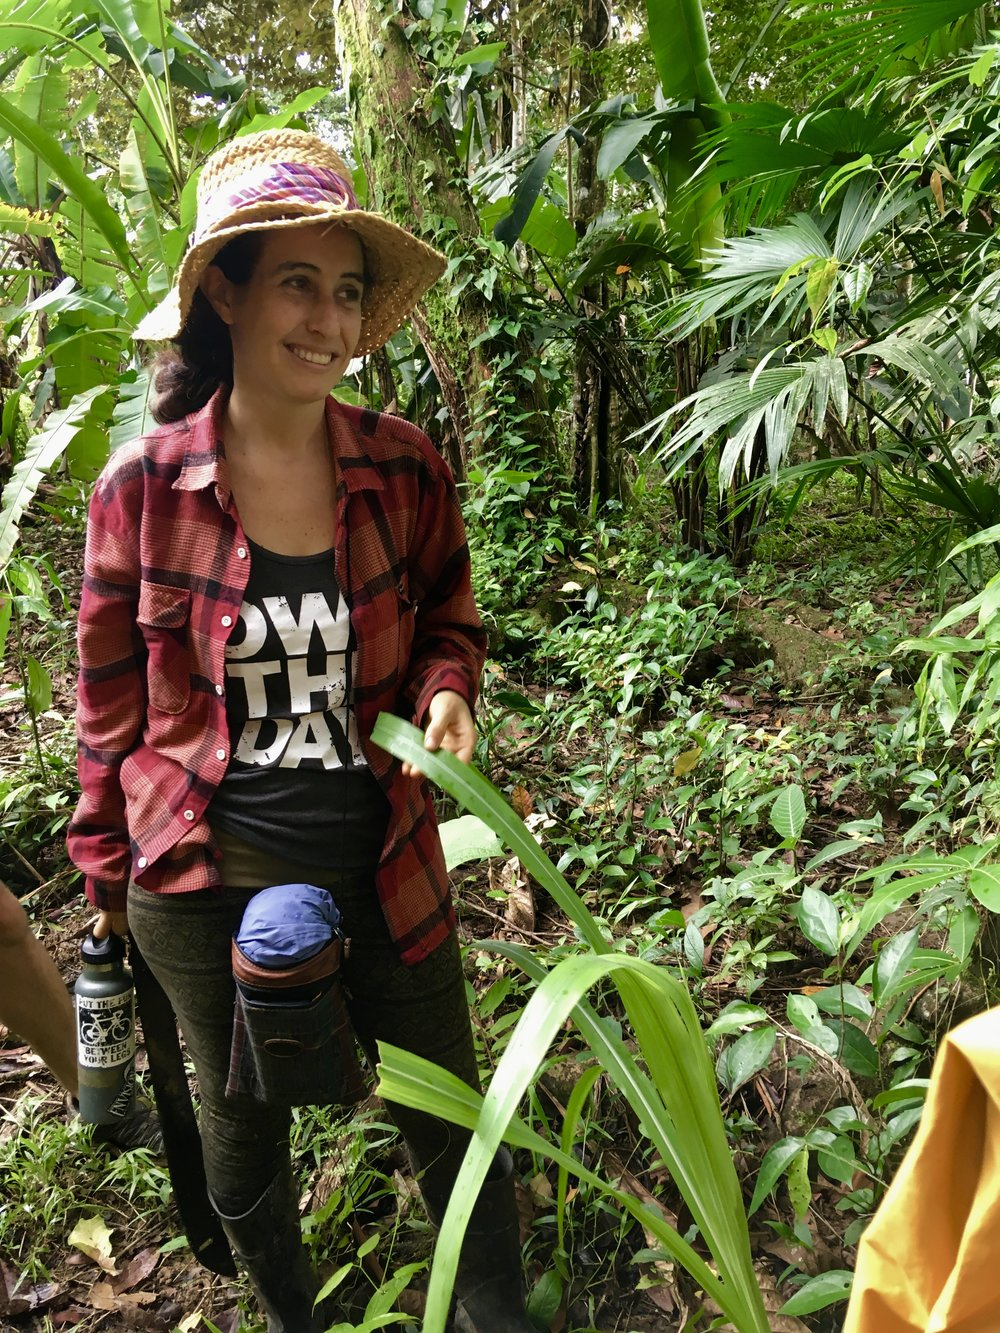 Laura Palmieri in the field, Lead Facilitator for Permaculture for the Herbalist's Path, 72+ hour Permaculture Design Certification course and 80+ hour Herbal Studies course September 23 - October 18, 2019 at Lake Atitlan, Guatemala